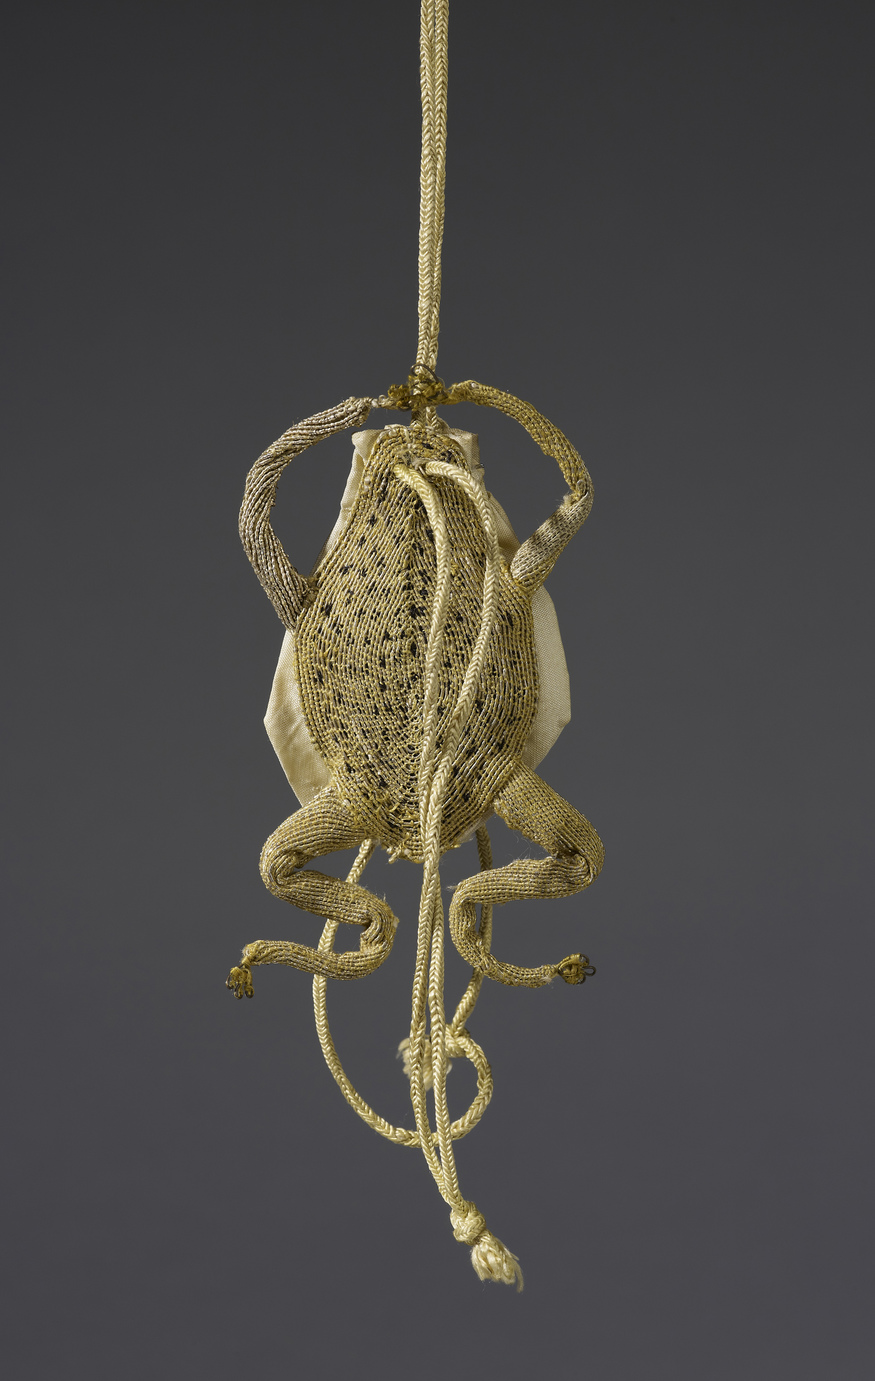 Gold thread and yellow taffeta purse in the shape of a frog, 17th century  Royal Collection Trust / (C) Her Majesty Queen Elizabeth II 2013.